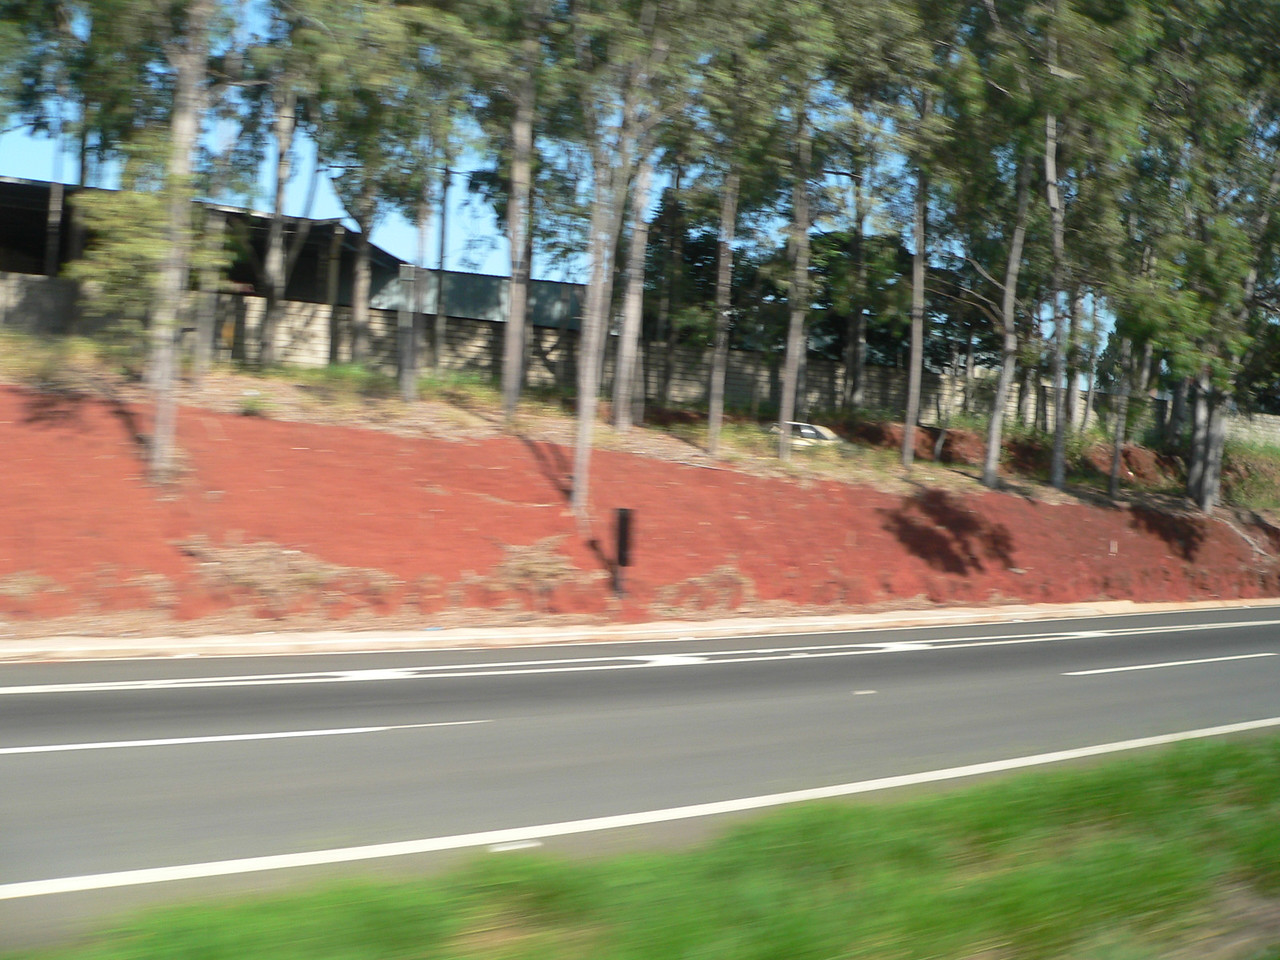 We are passing throught the town of Americana - the red soil reminds me of Georgia.